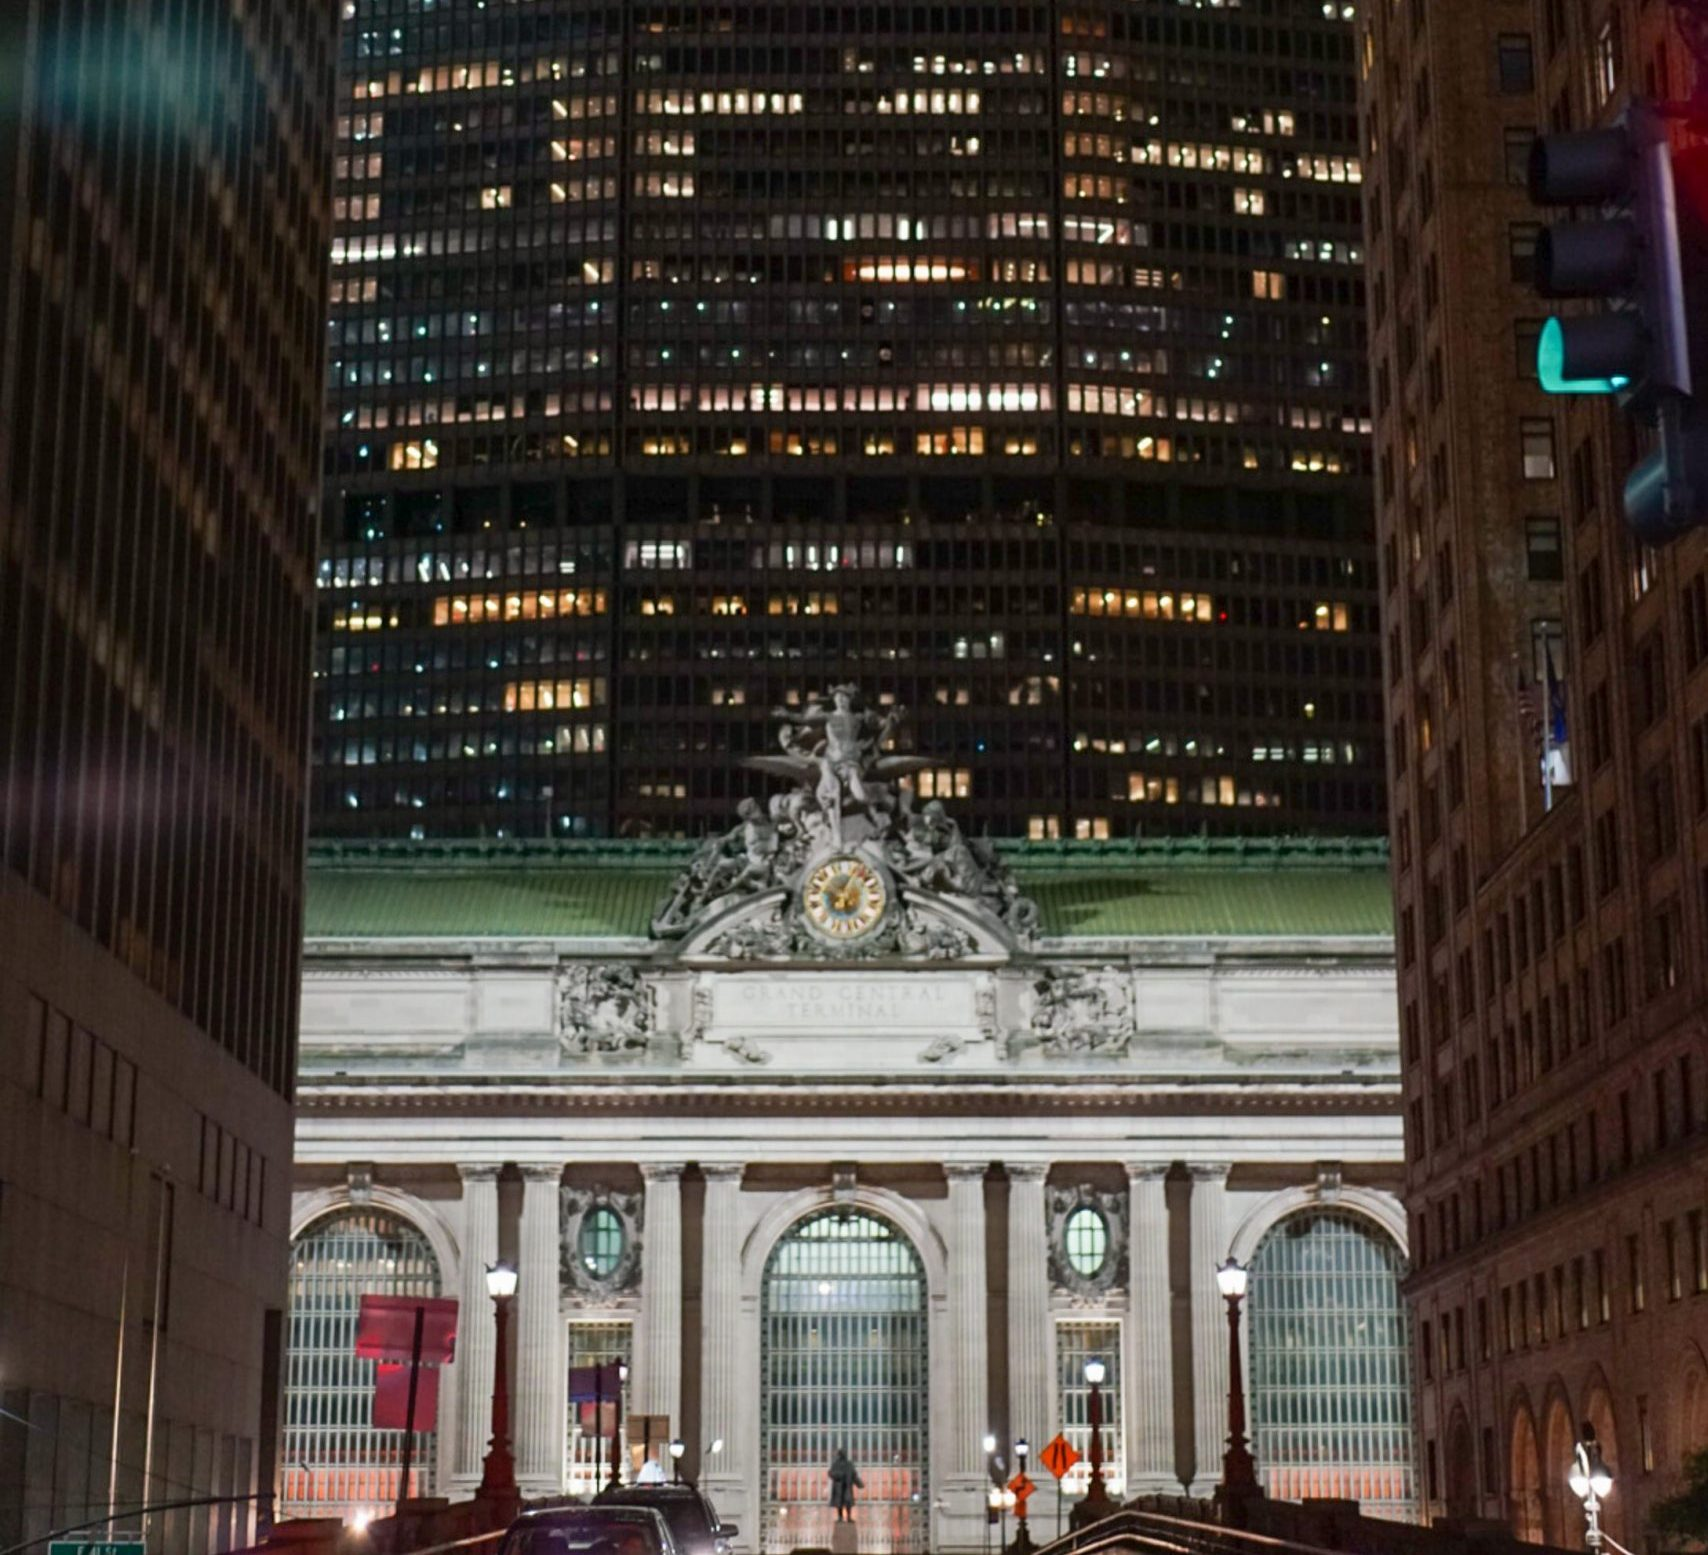 The outside of Grand Central